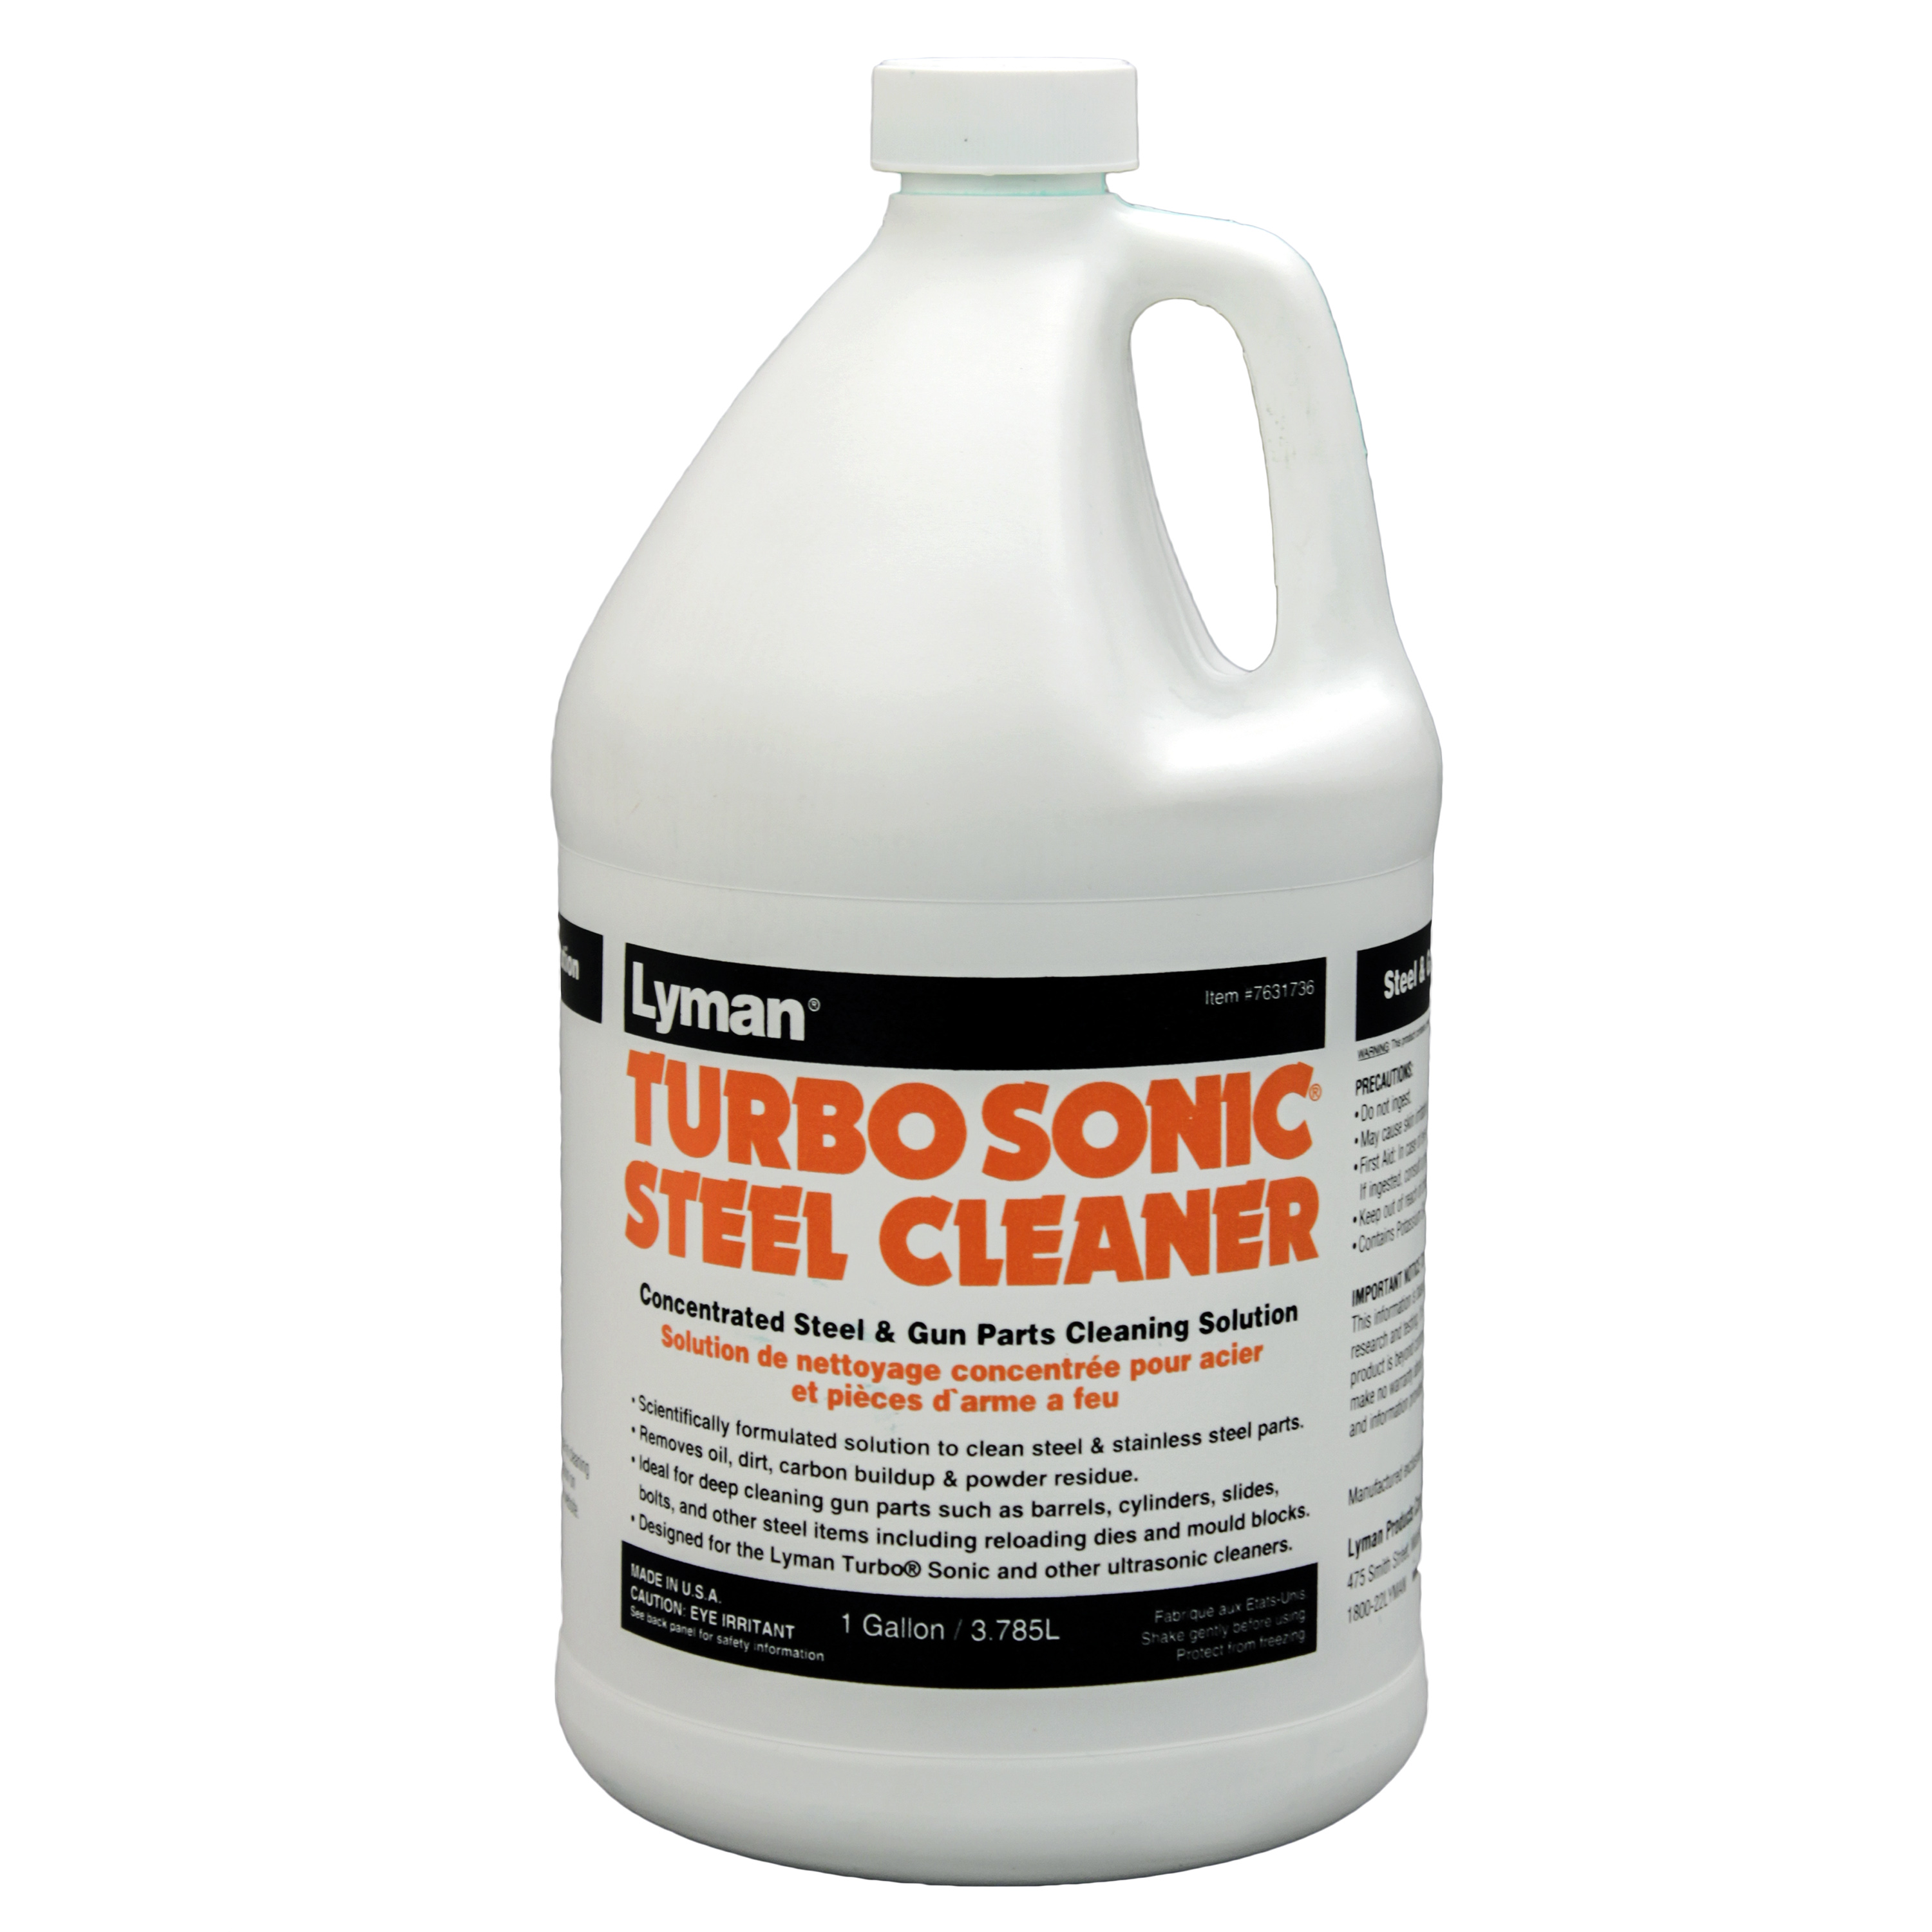 Lyman TurboSonic Gun Parts Cleaning Concentrate (1 Gal) by Lyman